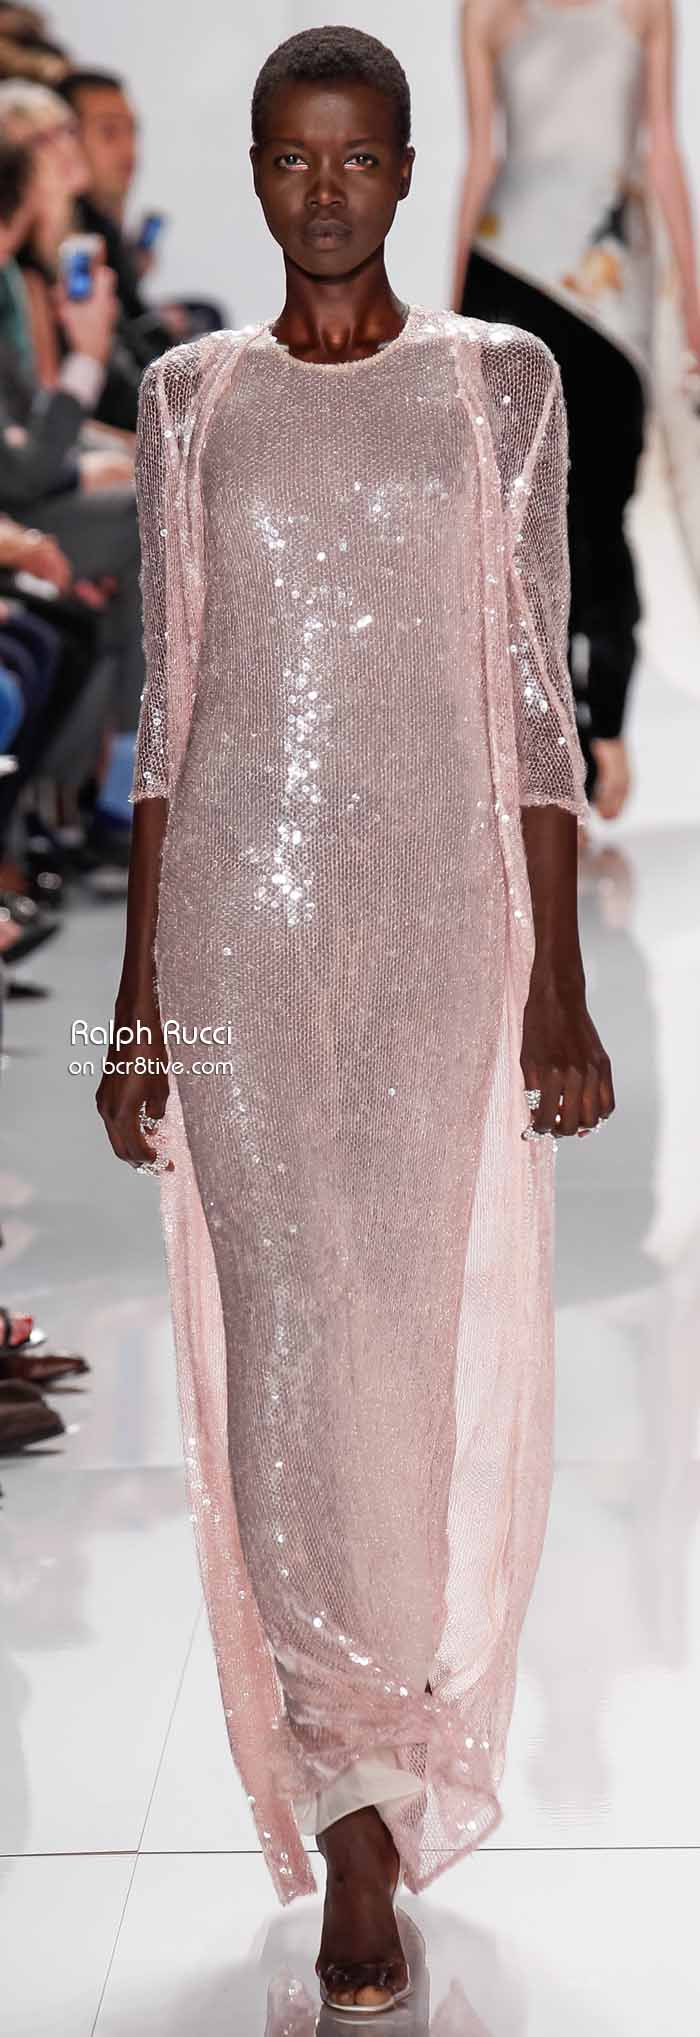 Ralph Rucci Spring 2014 #NYFW - Gown with Sequins